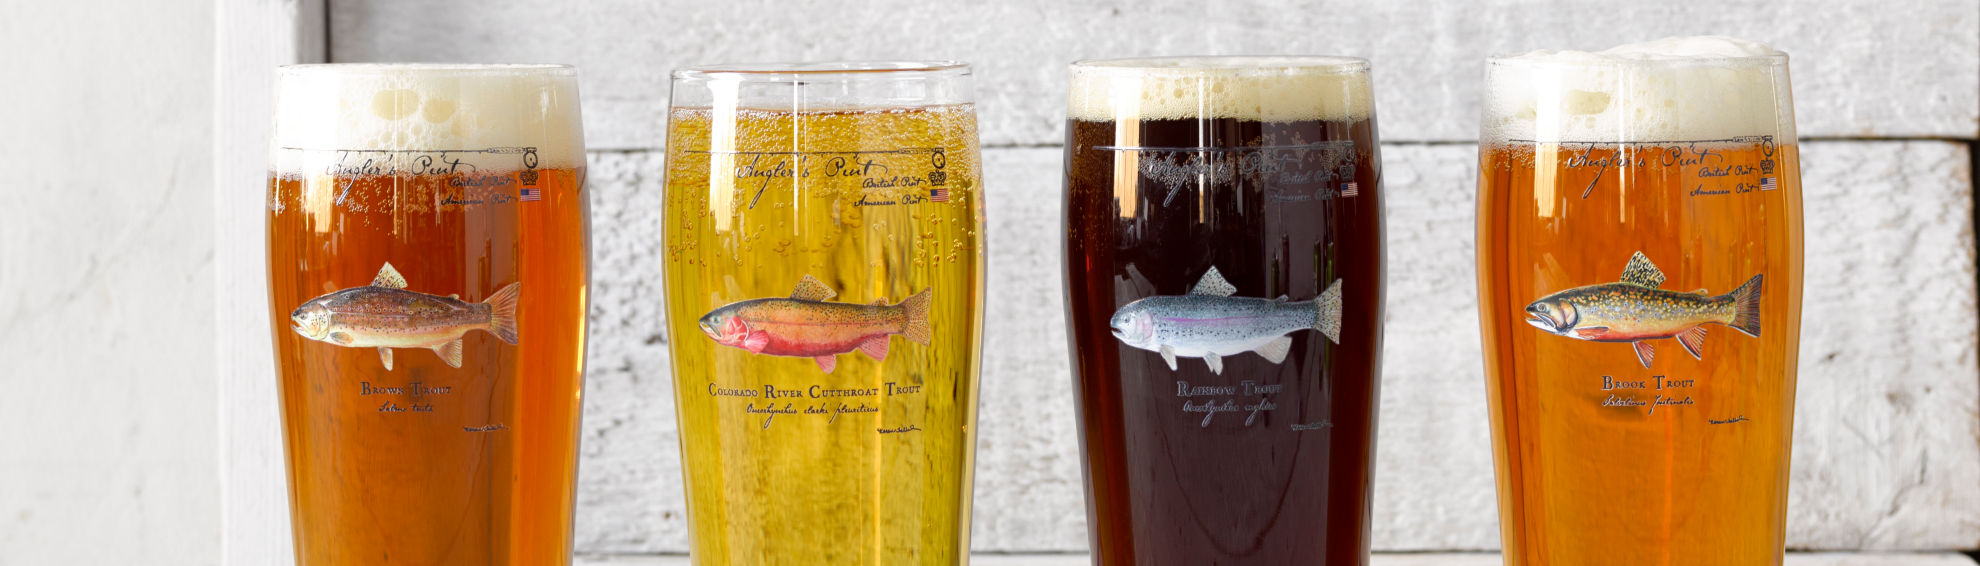 pint glasses full of different kinds of beer lined up in front of a white wood background